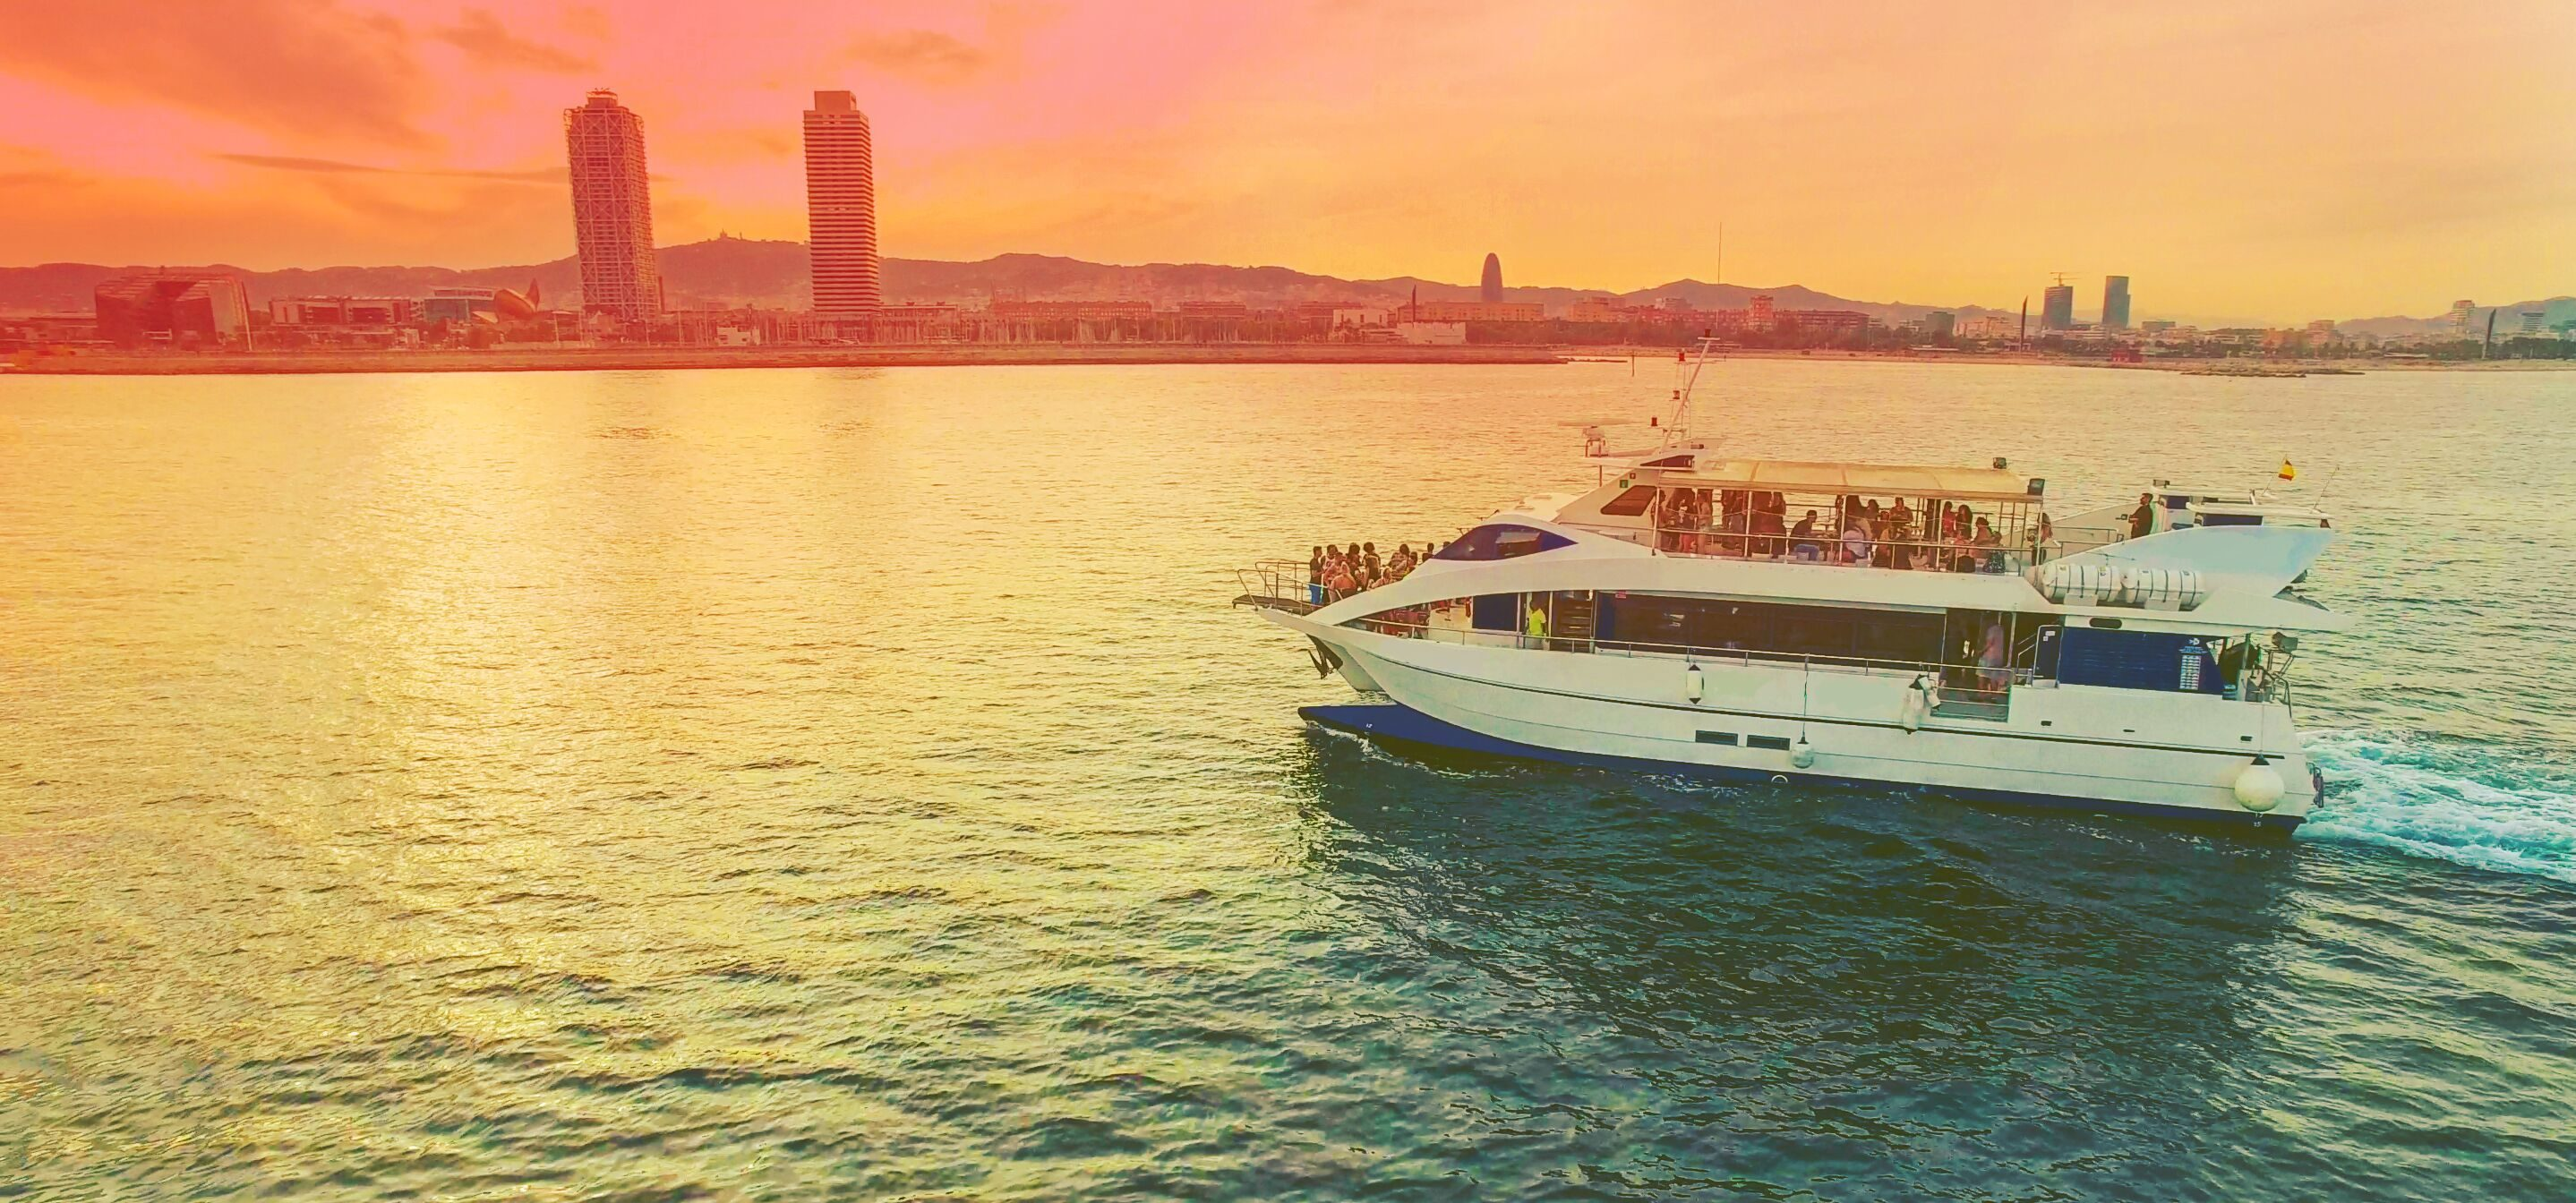 Sunset Halloween Boat Party 2020 Champagne Sunset Boat Party   Original Barcelona Tours